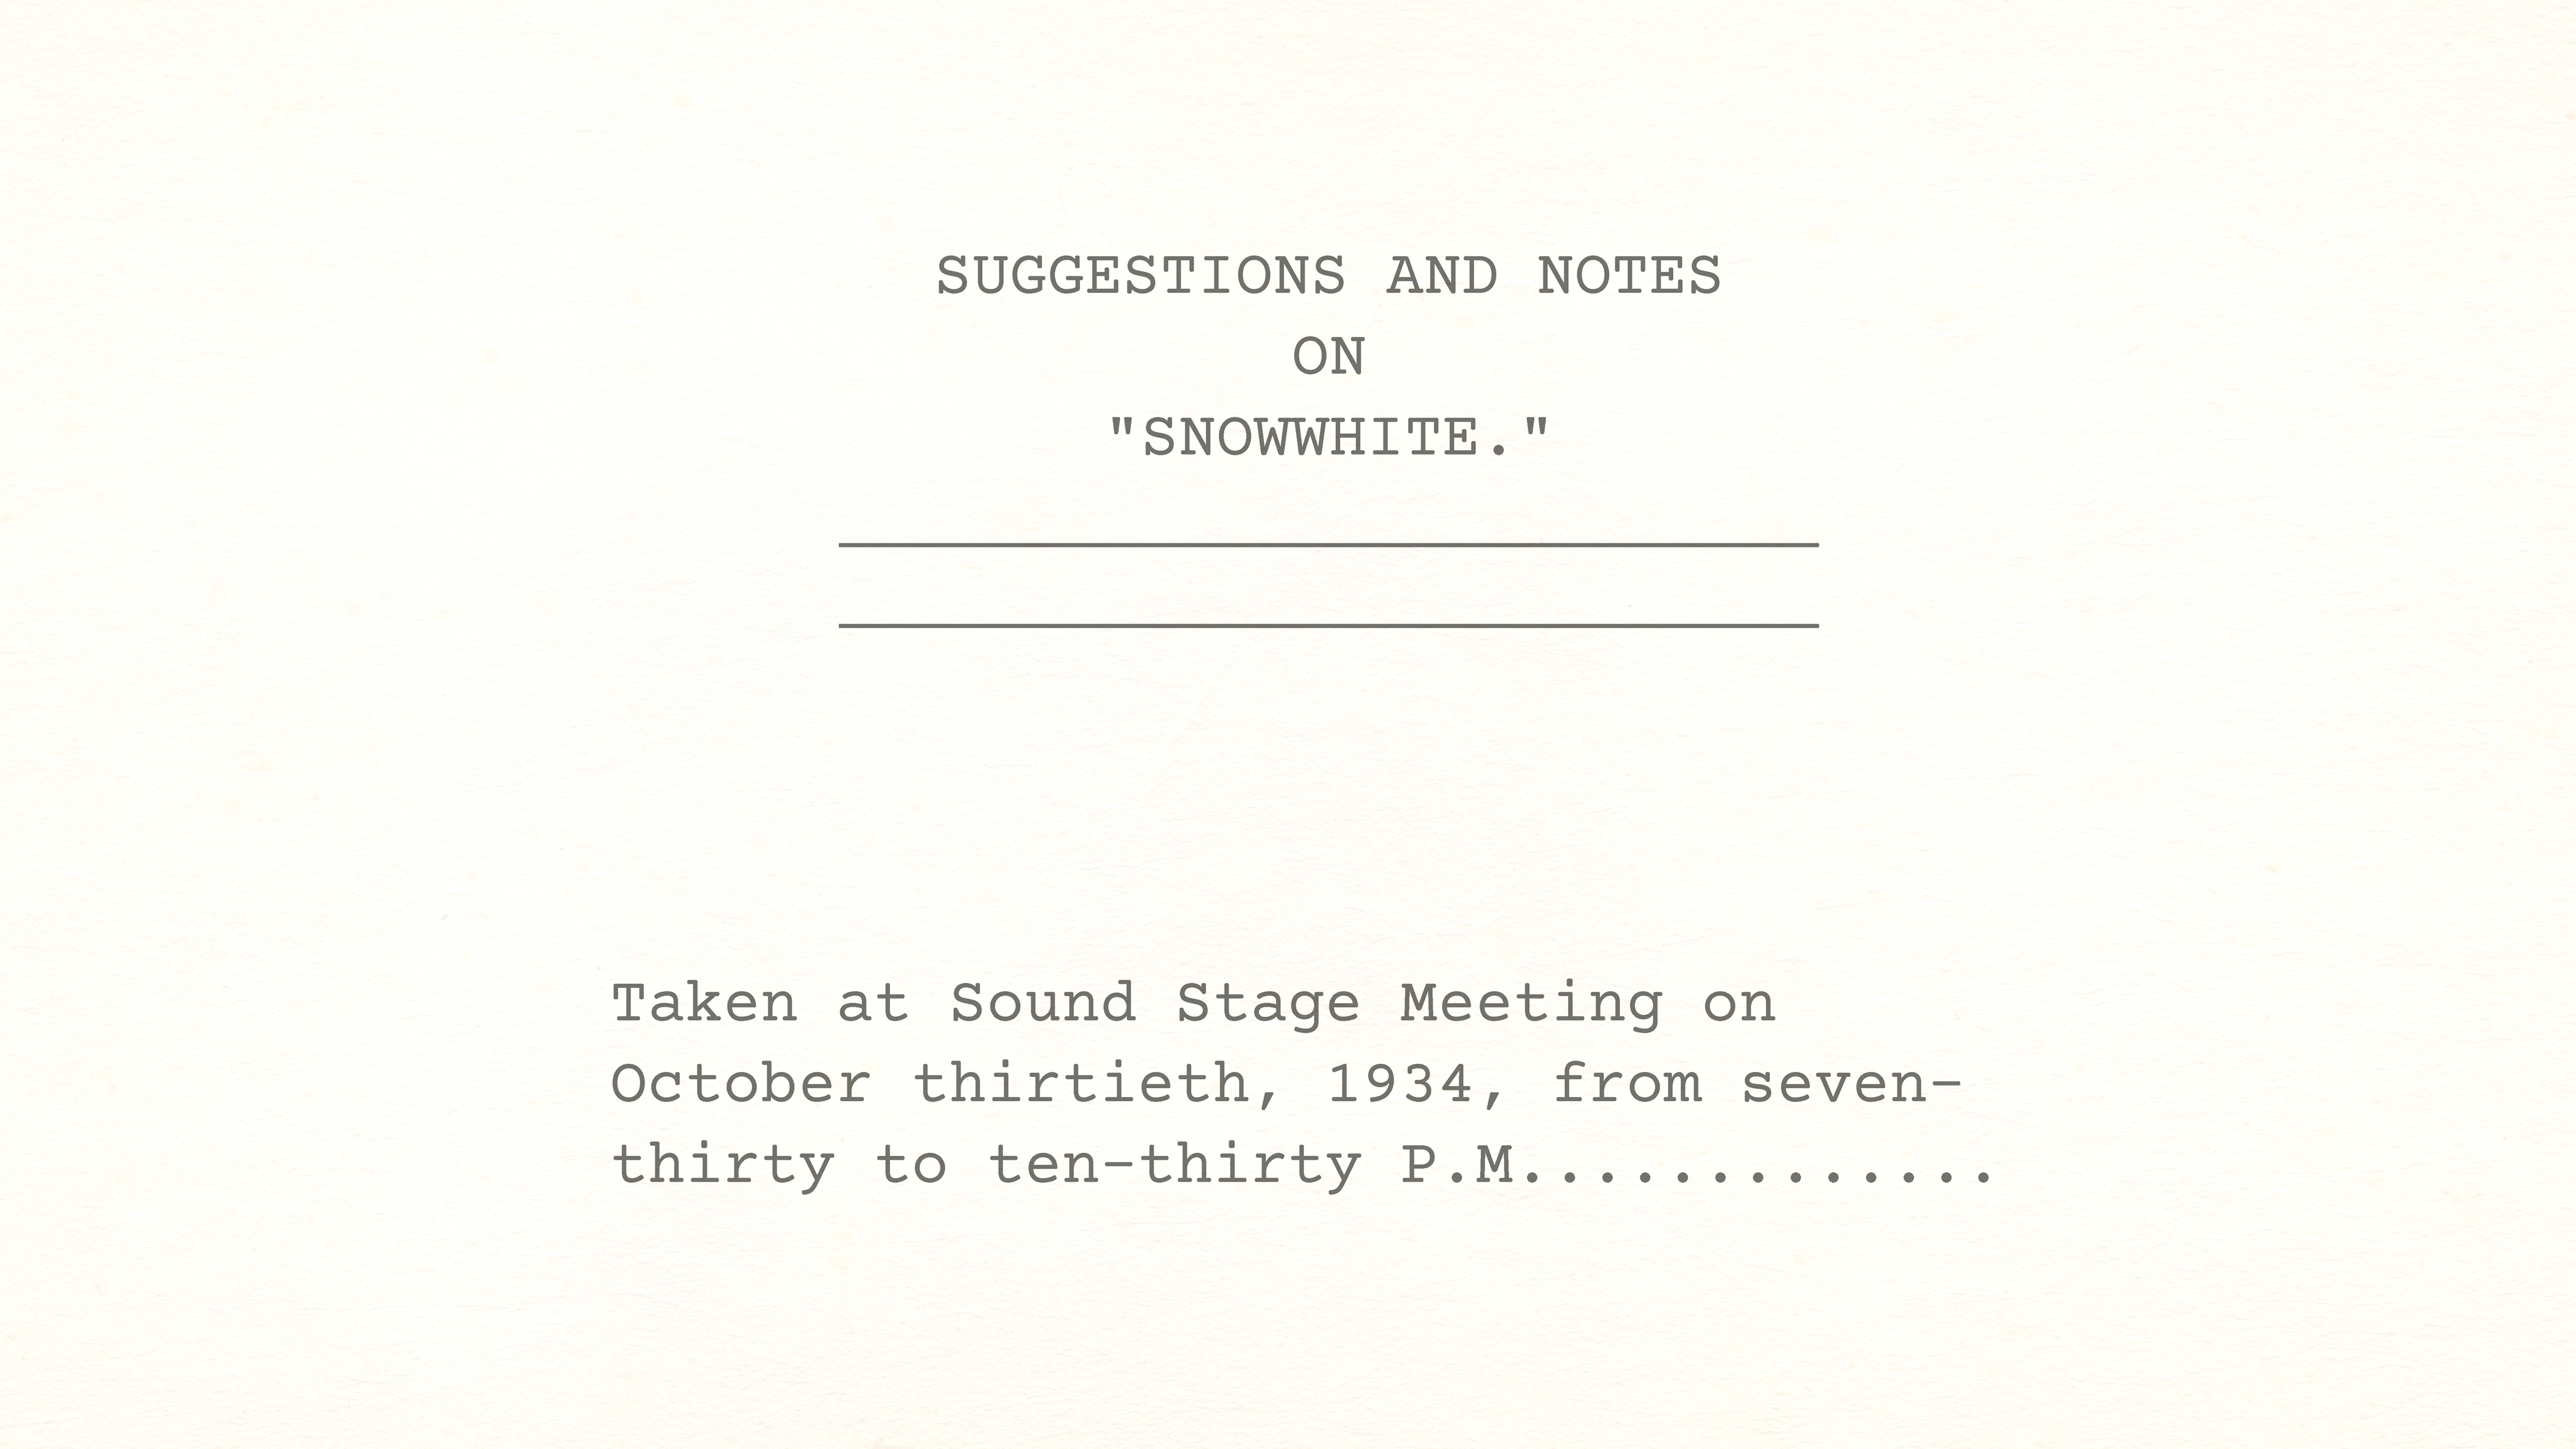 SUGGESTIONS and NOTES on SNOW WHITE taken at an evening Sound Stage Meeting on October 30, 1934